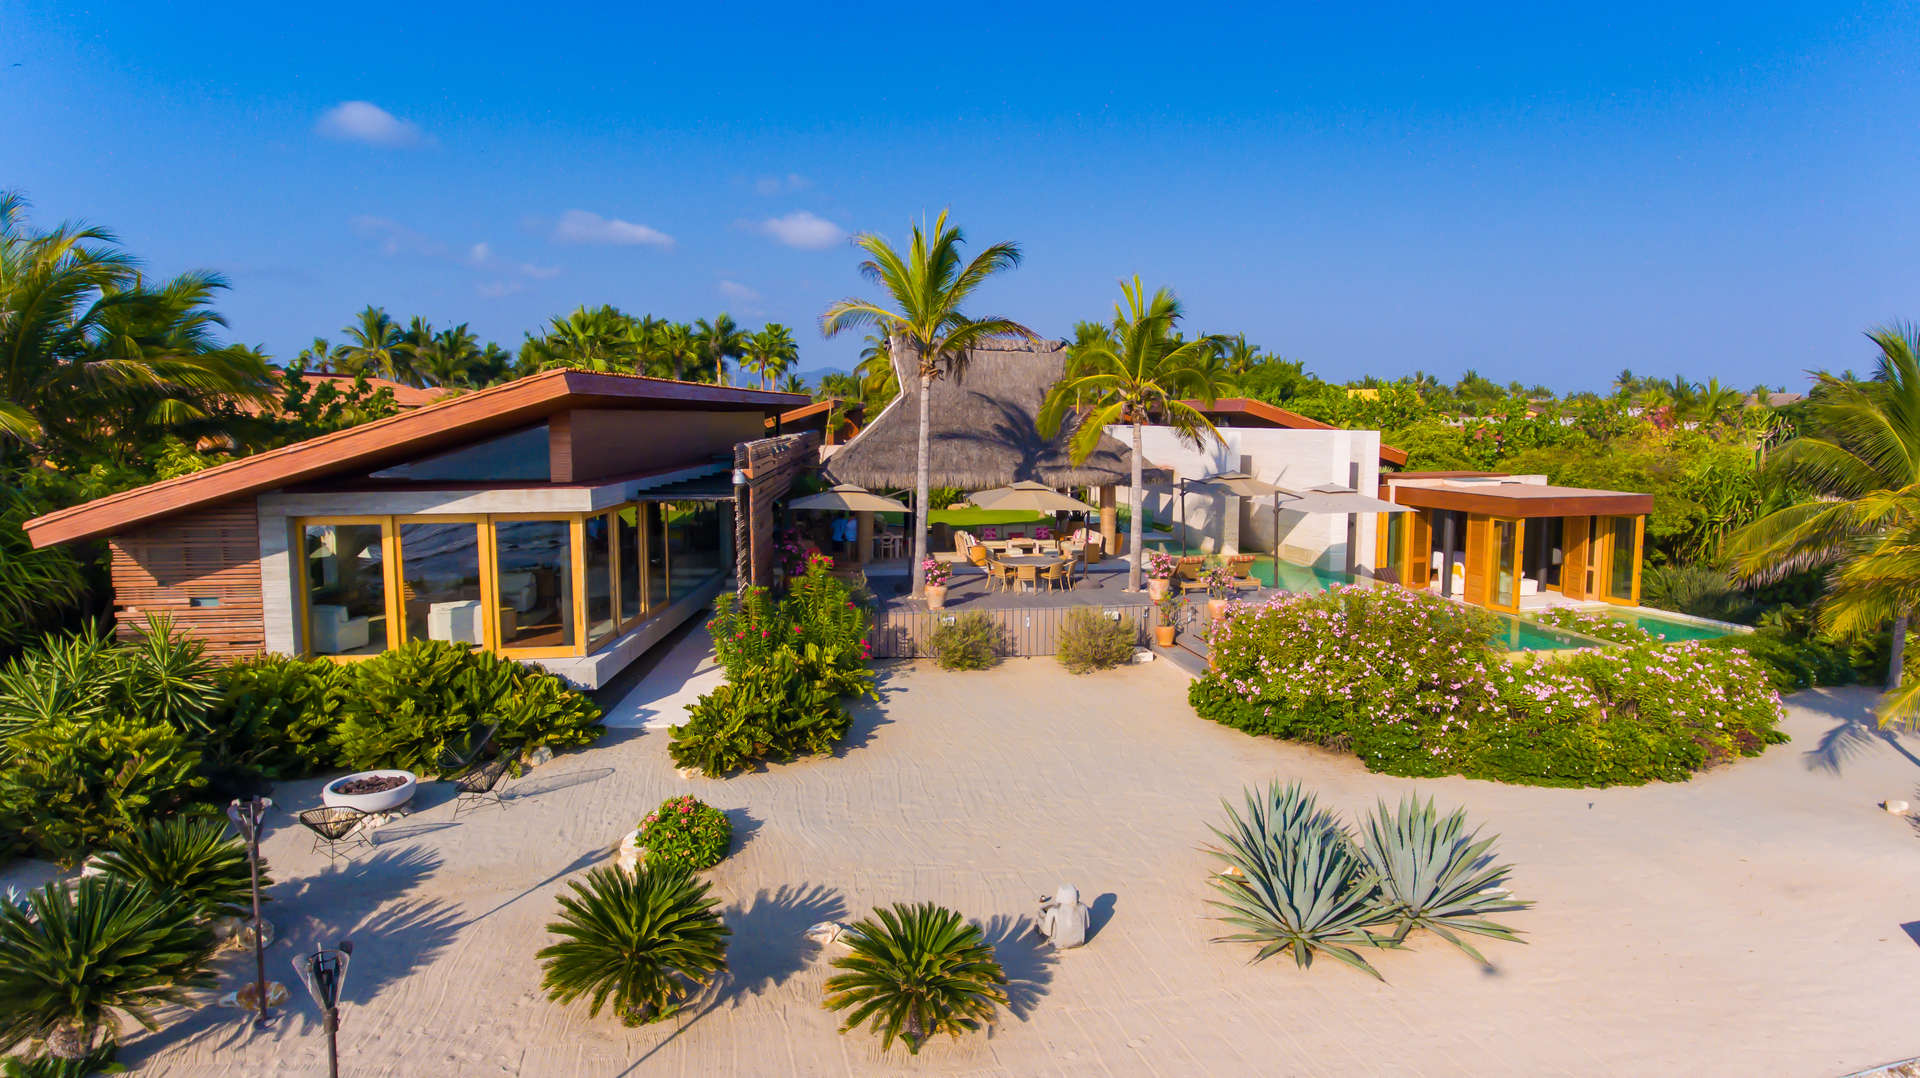 Luxury vacation rentals mexico - Punta mita - La punta estates - Villa Samba - Image 1/11